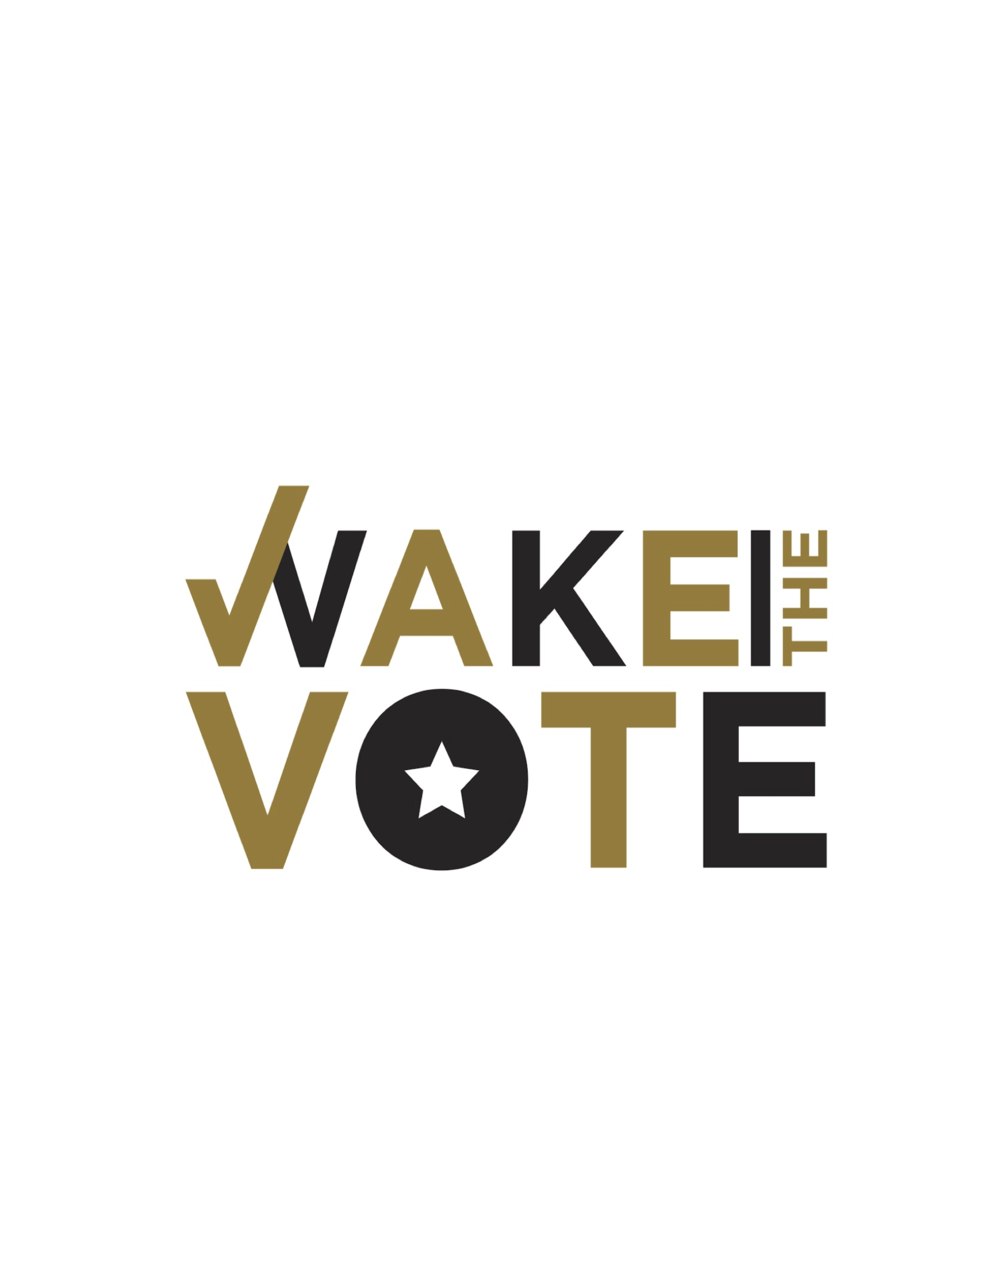 """FALL 2018    Wake the Vote: Midterms Matter   The following is placeholder text known as """"lorem ipsum,"""" which is scrambled Latin used by designers to mimic real copy. Class aptent taciti sociosqu ad litora torquent per conubia nostra, per inceptos himenaeos. Vestibulum ante ipsum primis in faucibus orci luctus et ultrices posuere cubilia Curae. Class aptent taciti sociosqu ad litora torquent per conubia nostra, per inceptos himenaeos."""